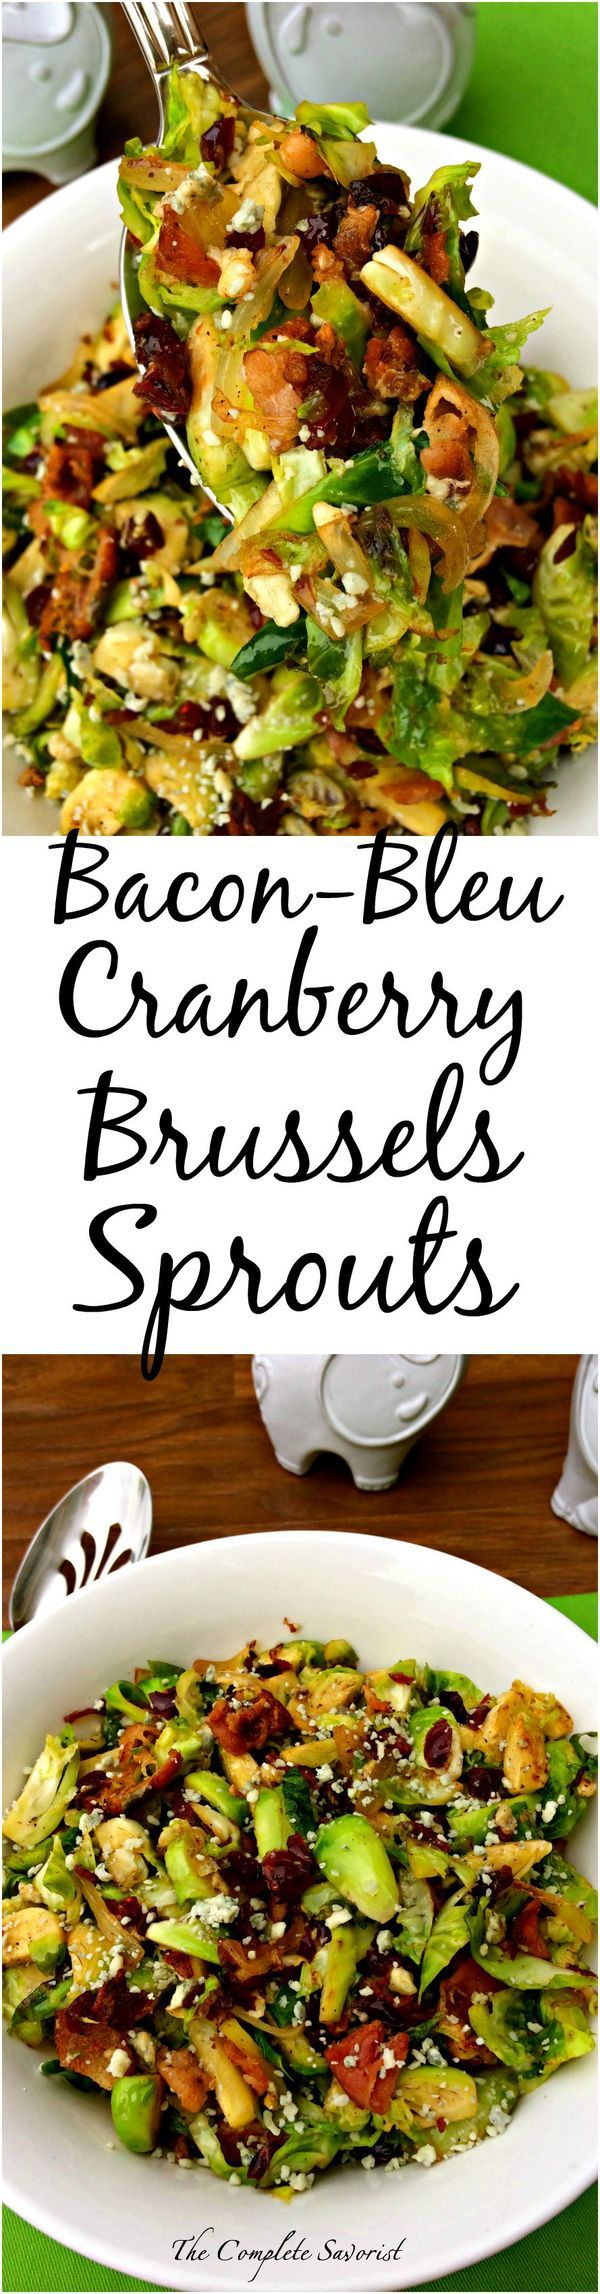 Bacon Bleu Cranberry Brussels Sprouts